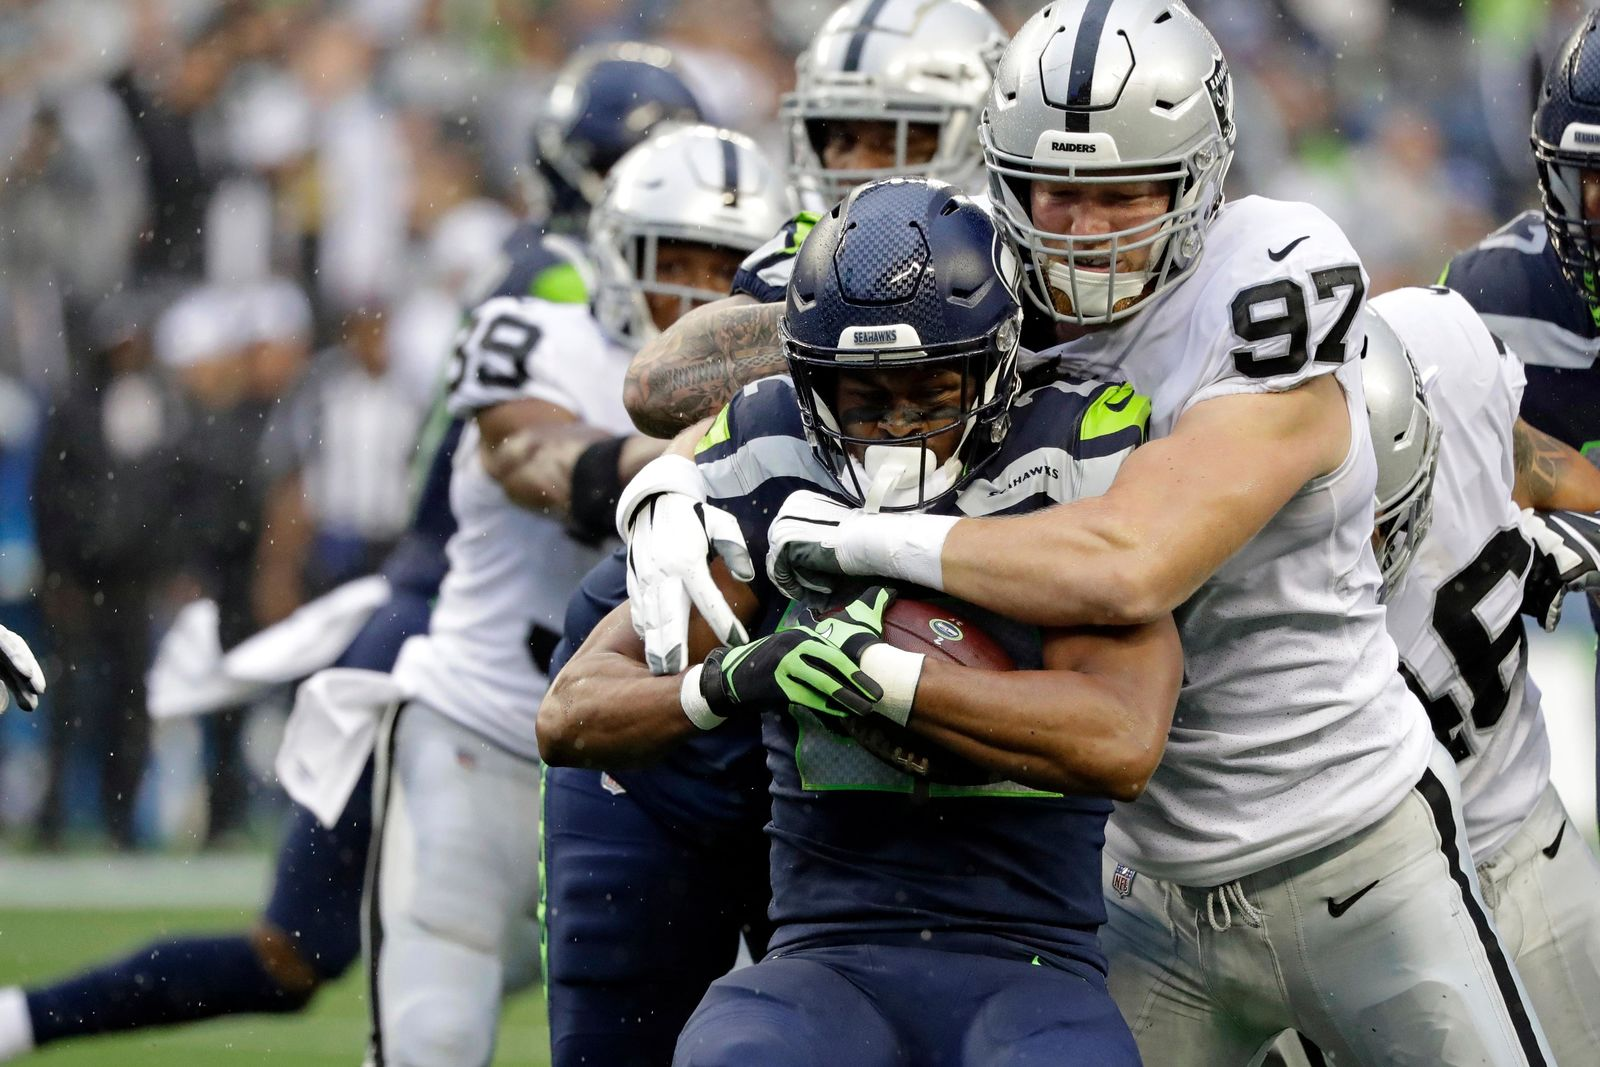 Seattle Seahawks running back C.J. Prosise, center, is tackled by Oakland Raiders defensive end Josh Mauro (97) during the first half of an NFL football preseason game Thursday, Aug. 29, 2019, in Seattle. (AP Photo/Elaine Thompson)